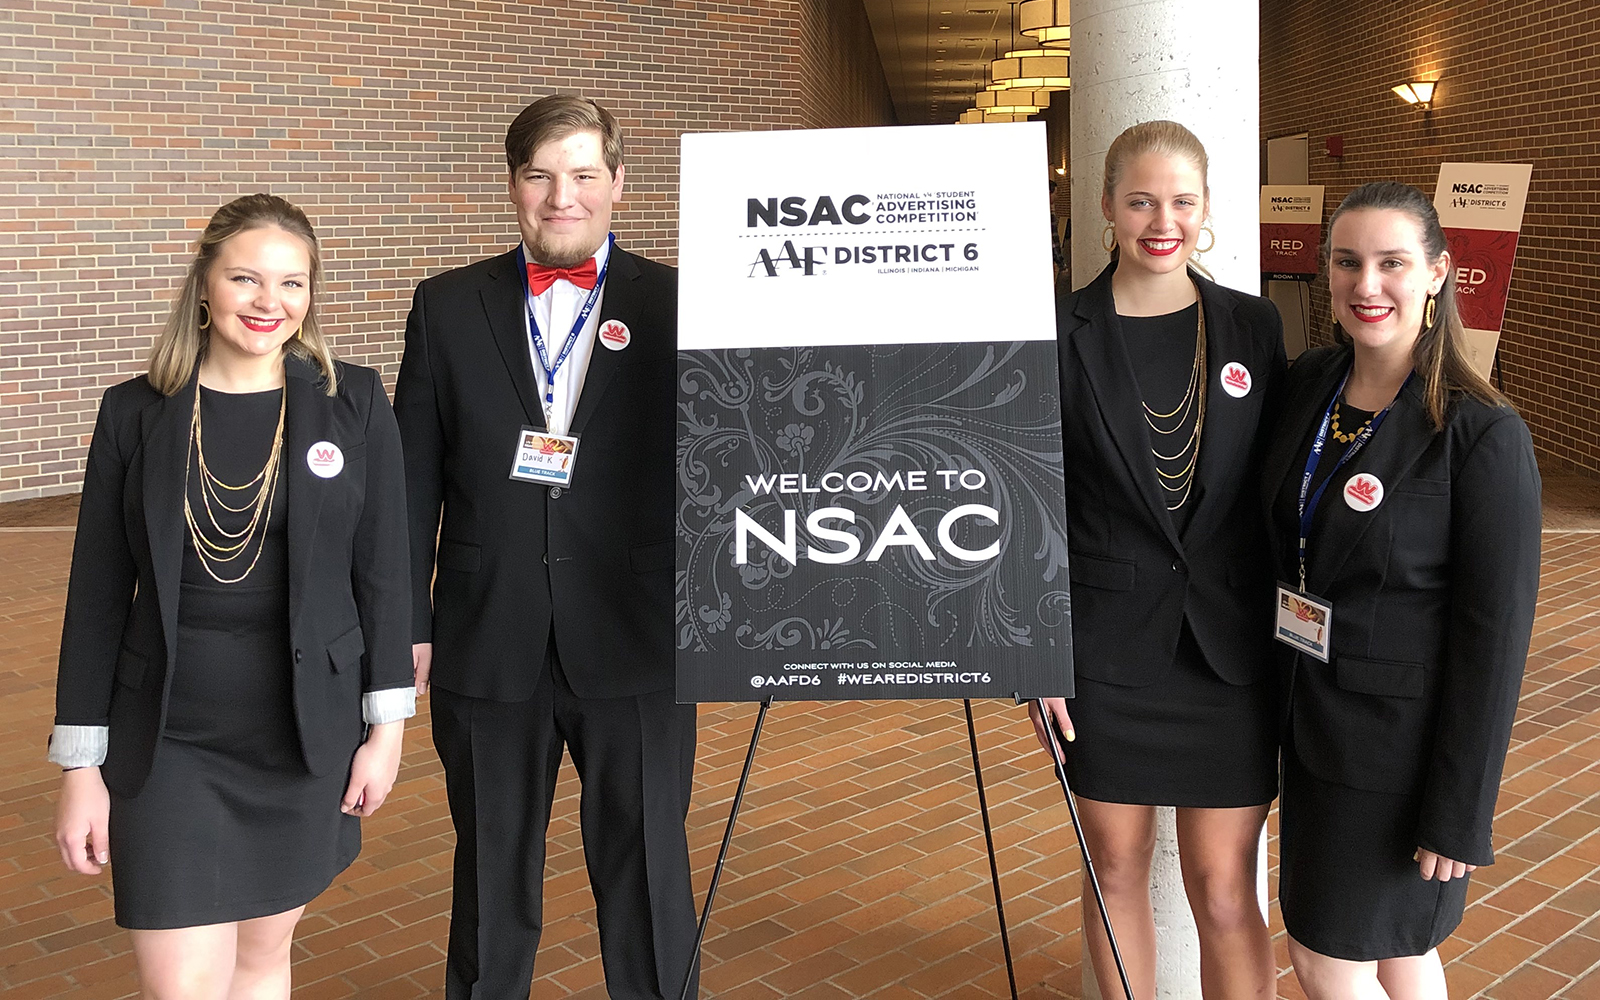 Olivet_mcgraw_school_business_competition_enactus_student_leadership_web6.jpg